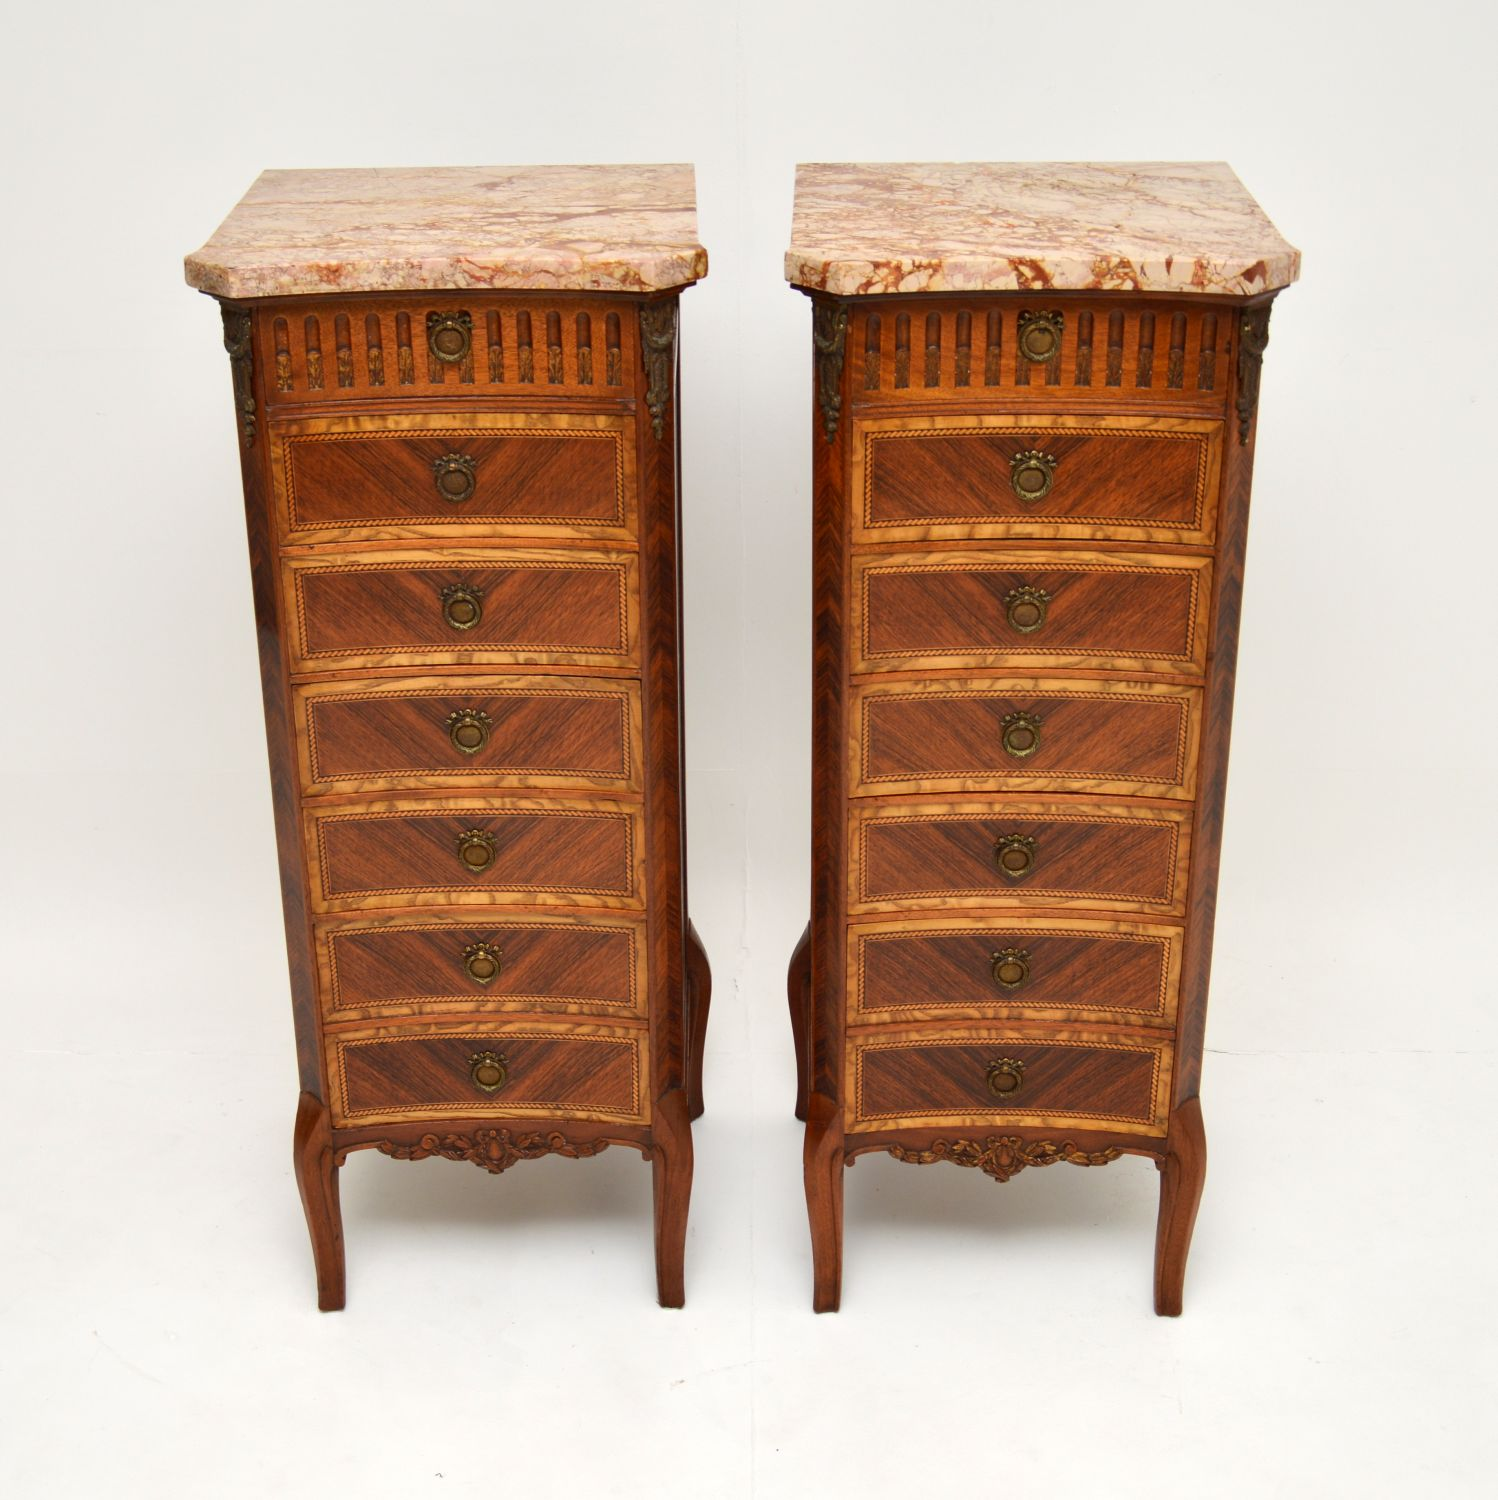 pair of antique french marble top chests of drawers